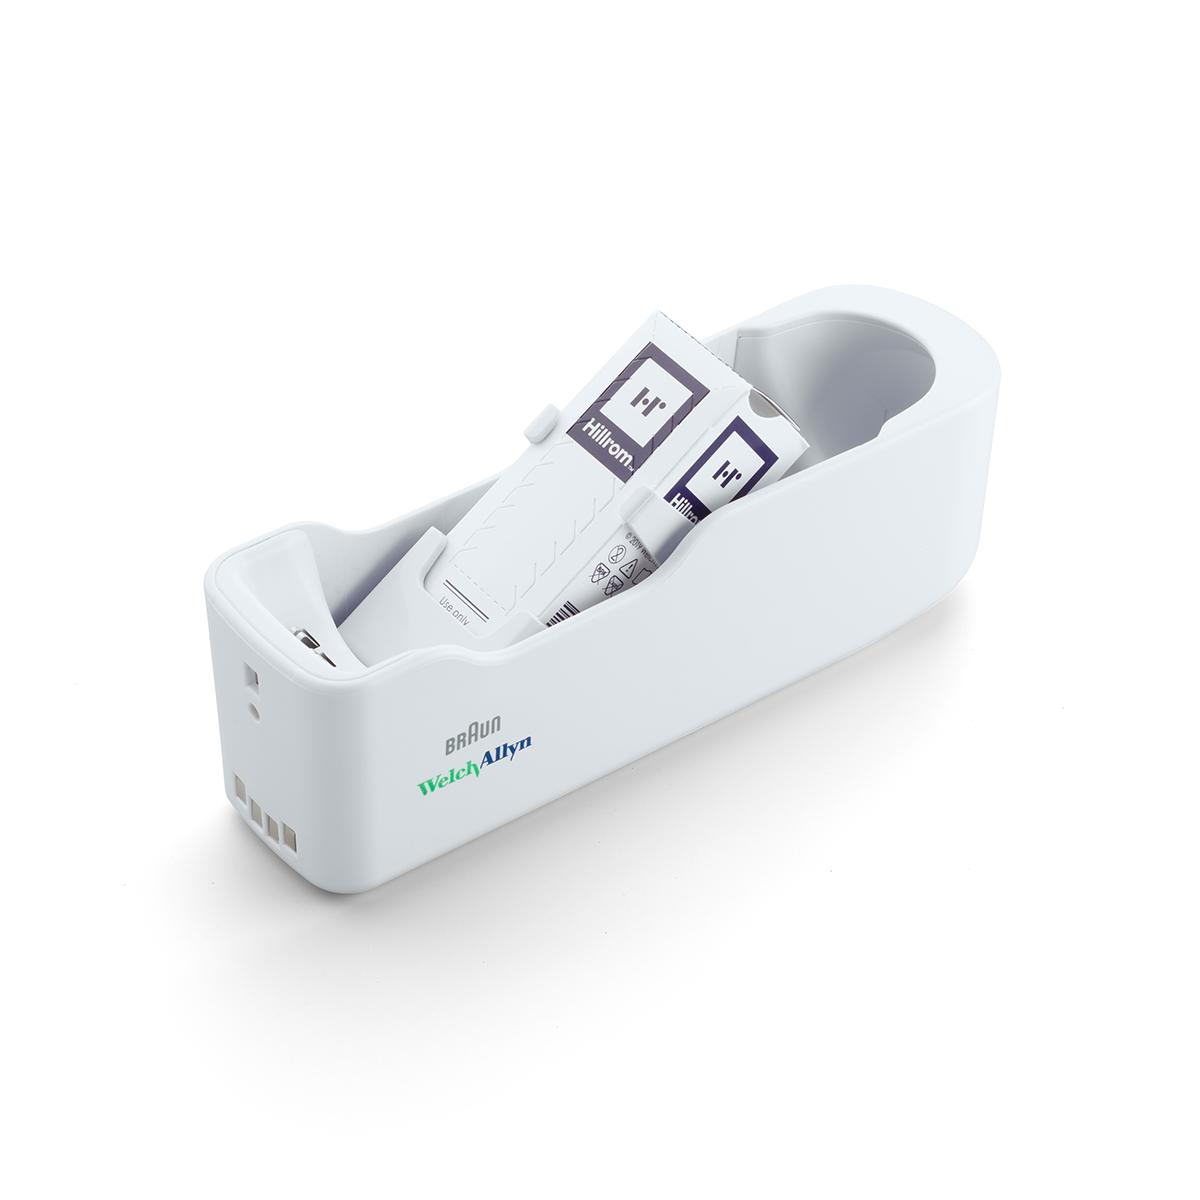 Braun ThermoScan PRO 6000 Ear Thermometer probe covers in cradle storage, 3/4 view, right side